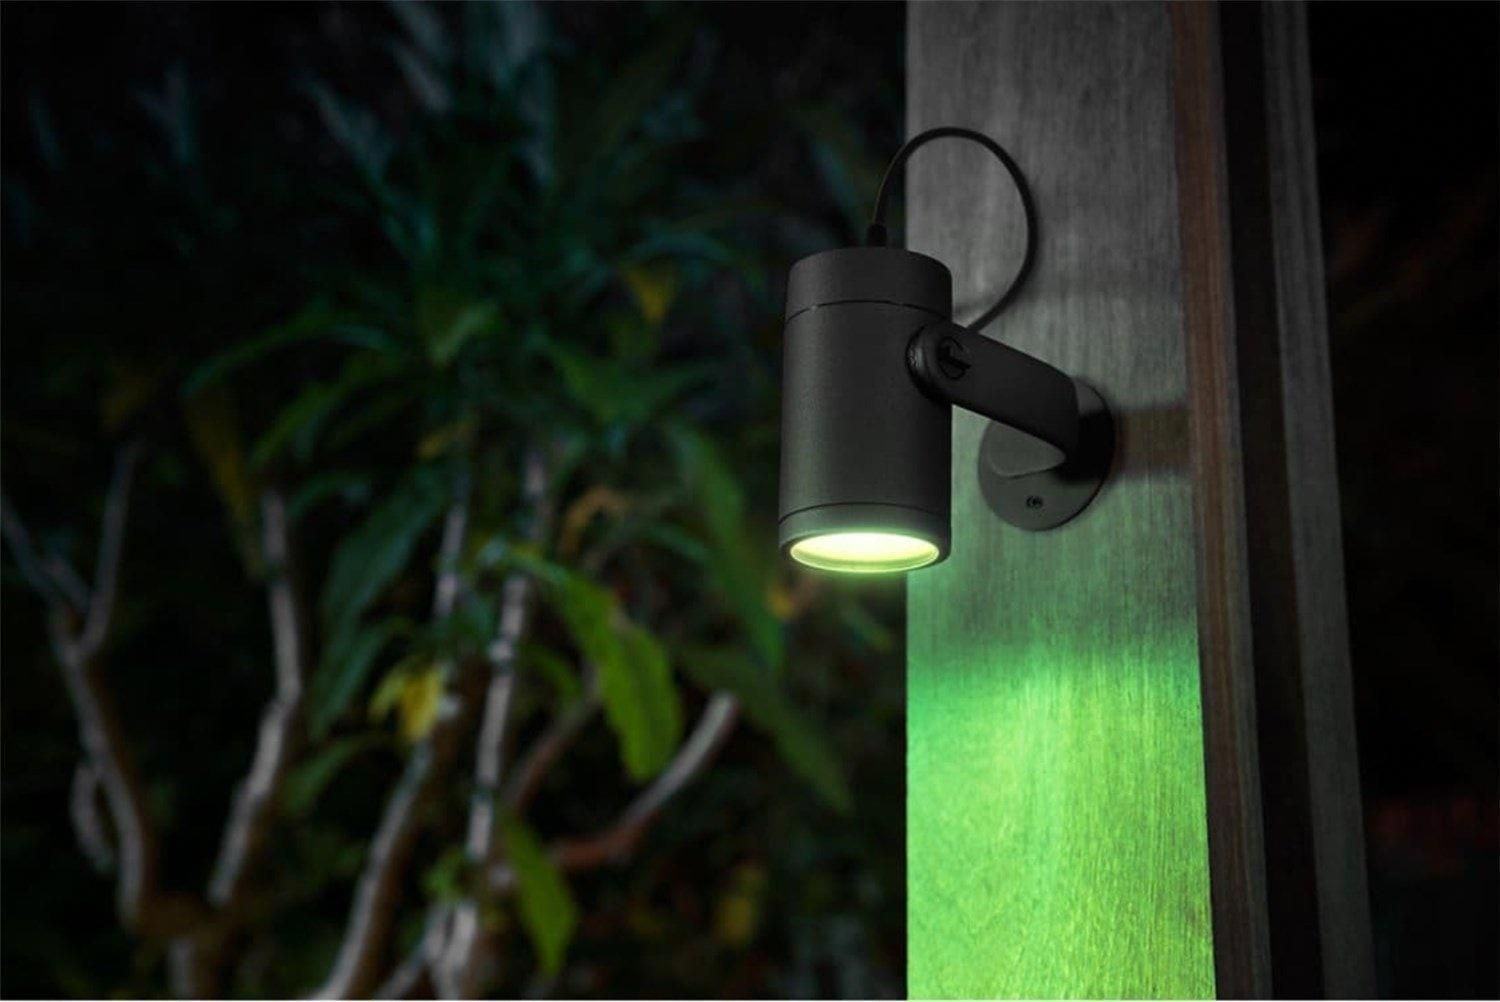 Bringing Smart Home Automation To The Outside Philips Hue Lily Outdoor Spot Light Review Crav Outdoor Lantern Lighting Hue Philips Outdoor Landscape Lighting